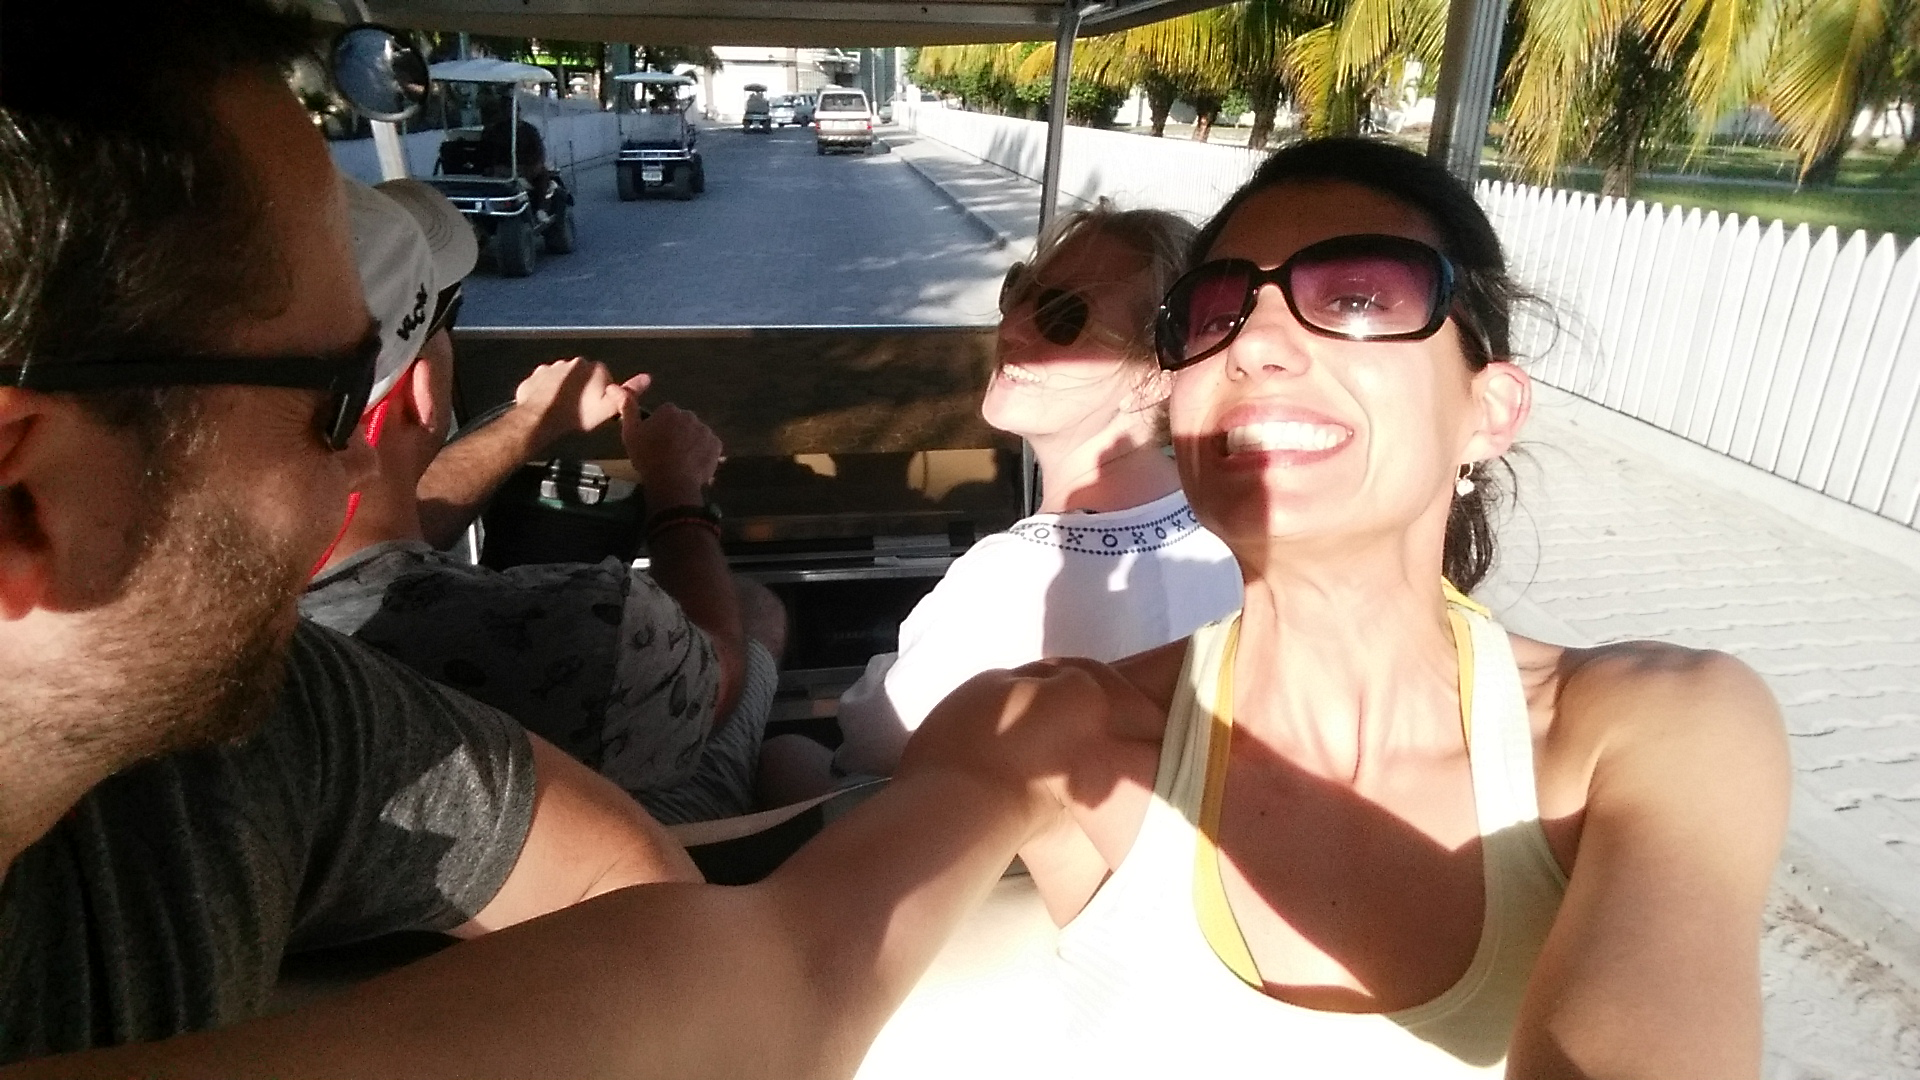 Most popular mode of transportation on the island was by golf cart.